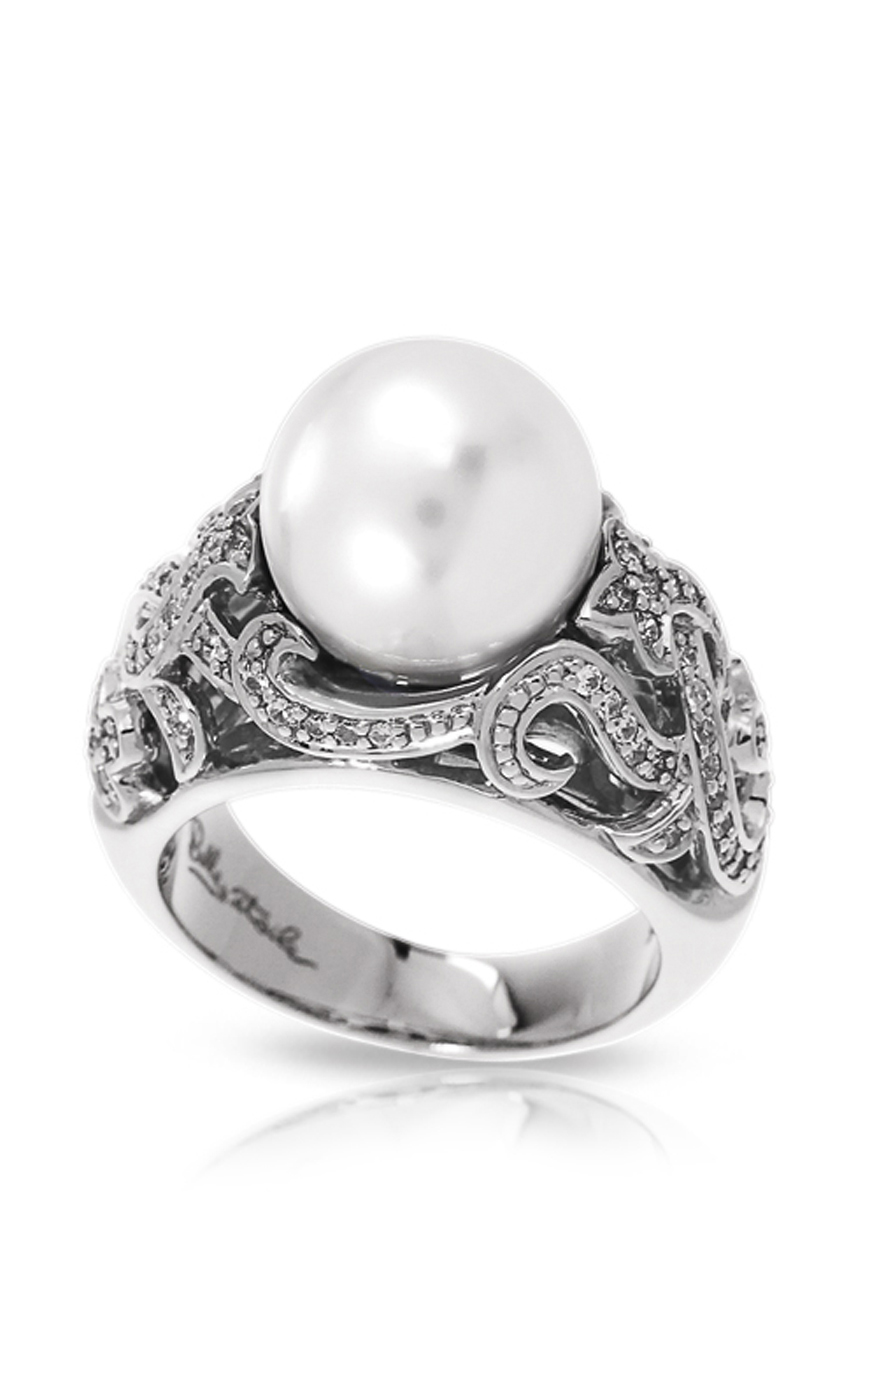 Belle Etoile Fiona White Ring 01031320102-9 product image